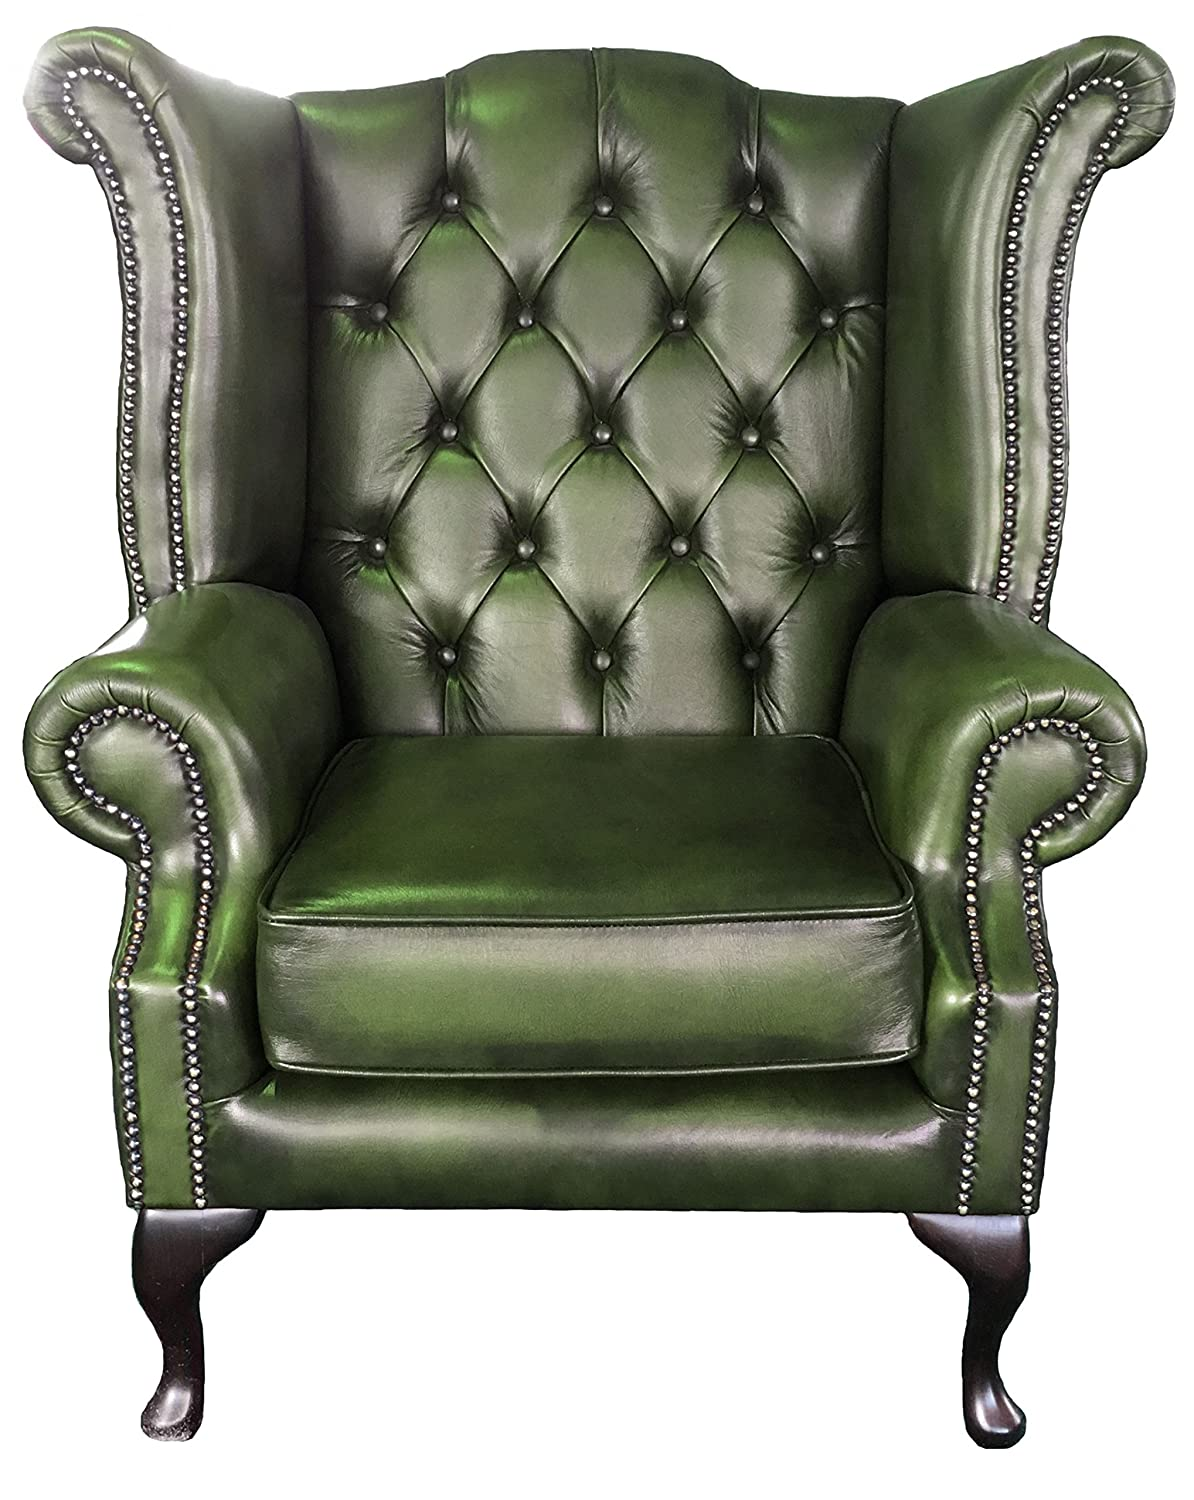 Chesterfield Antique Green Genuine Leather Queen Anne Armchair:  Amazon.co.uk: Kitchen U0026 Home